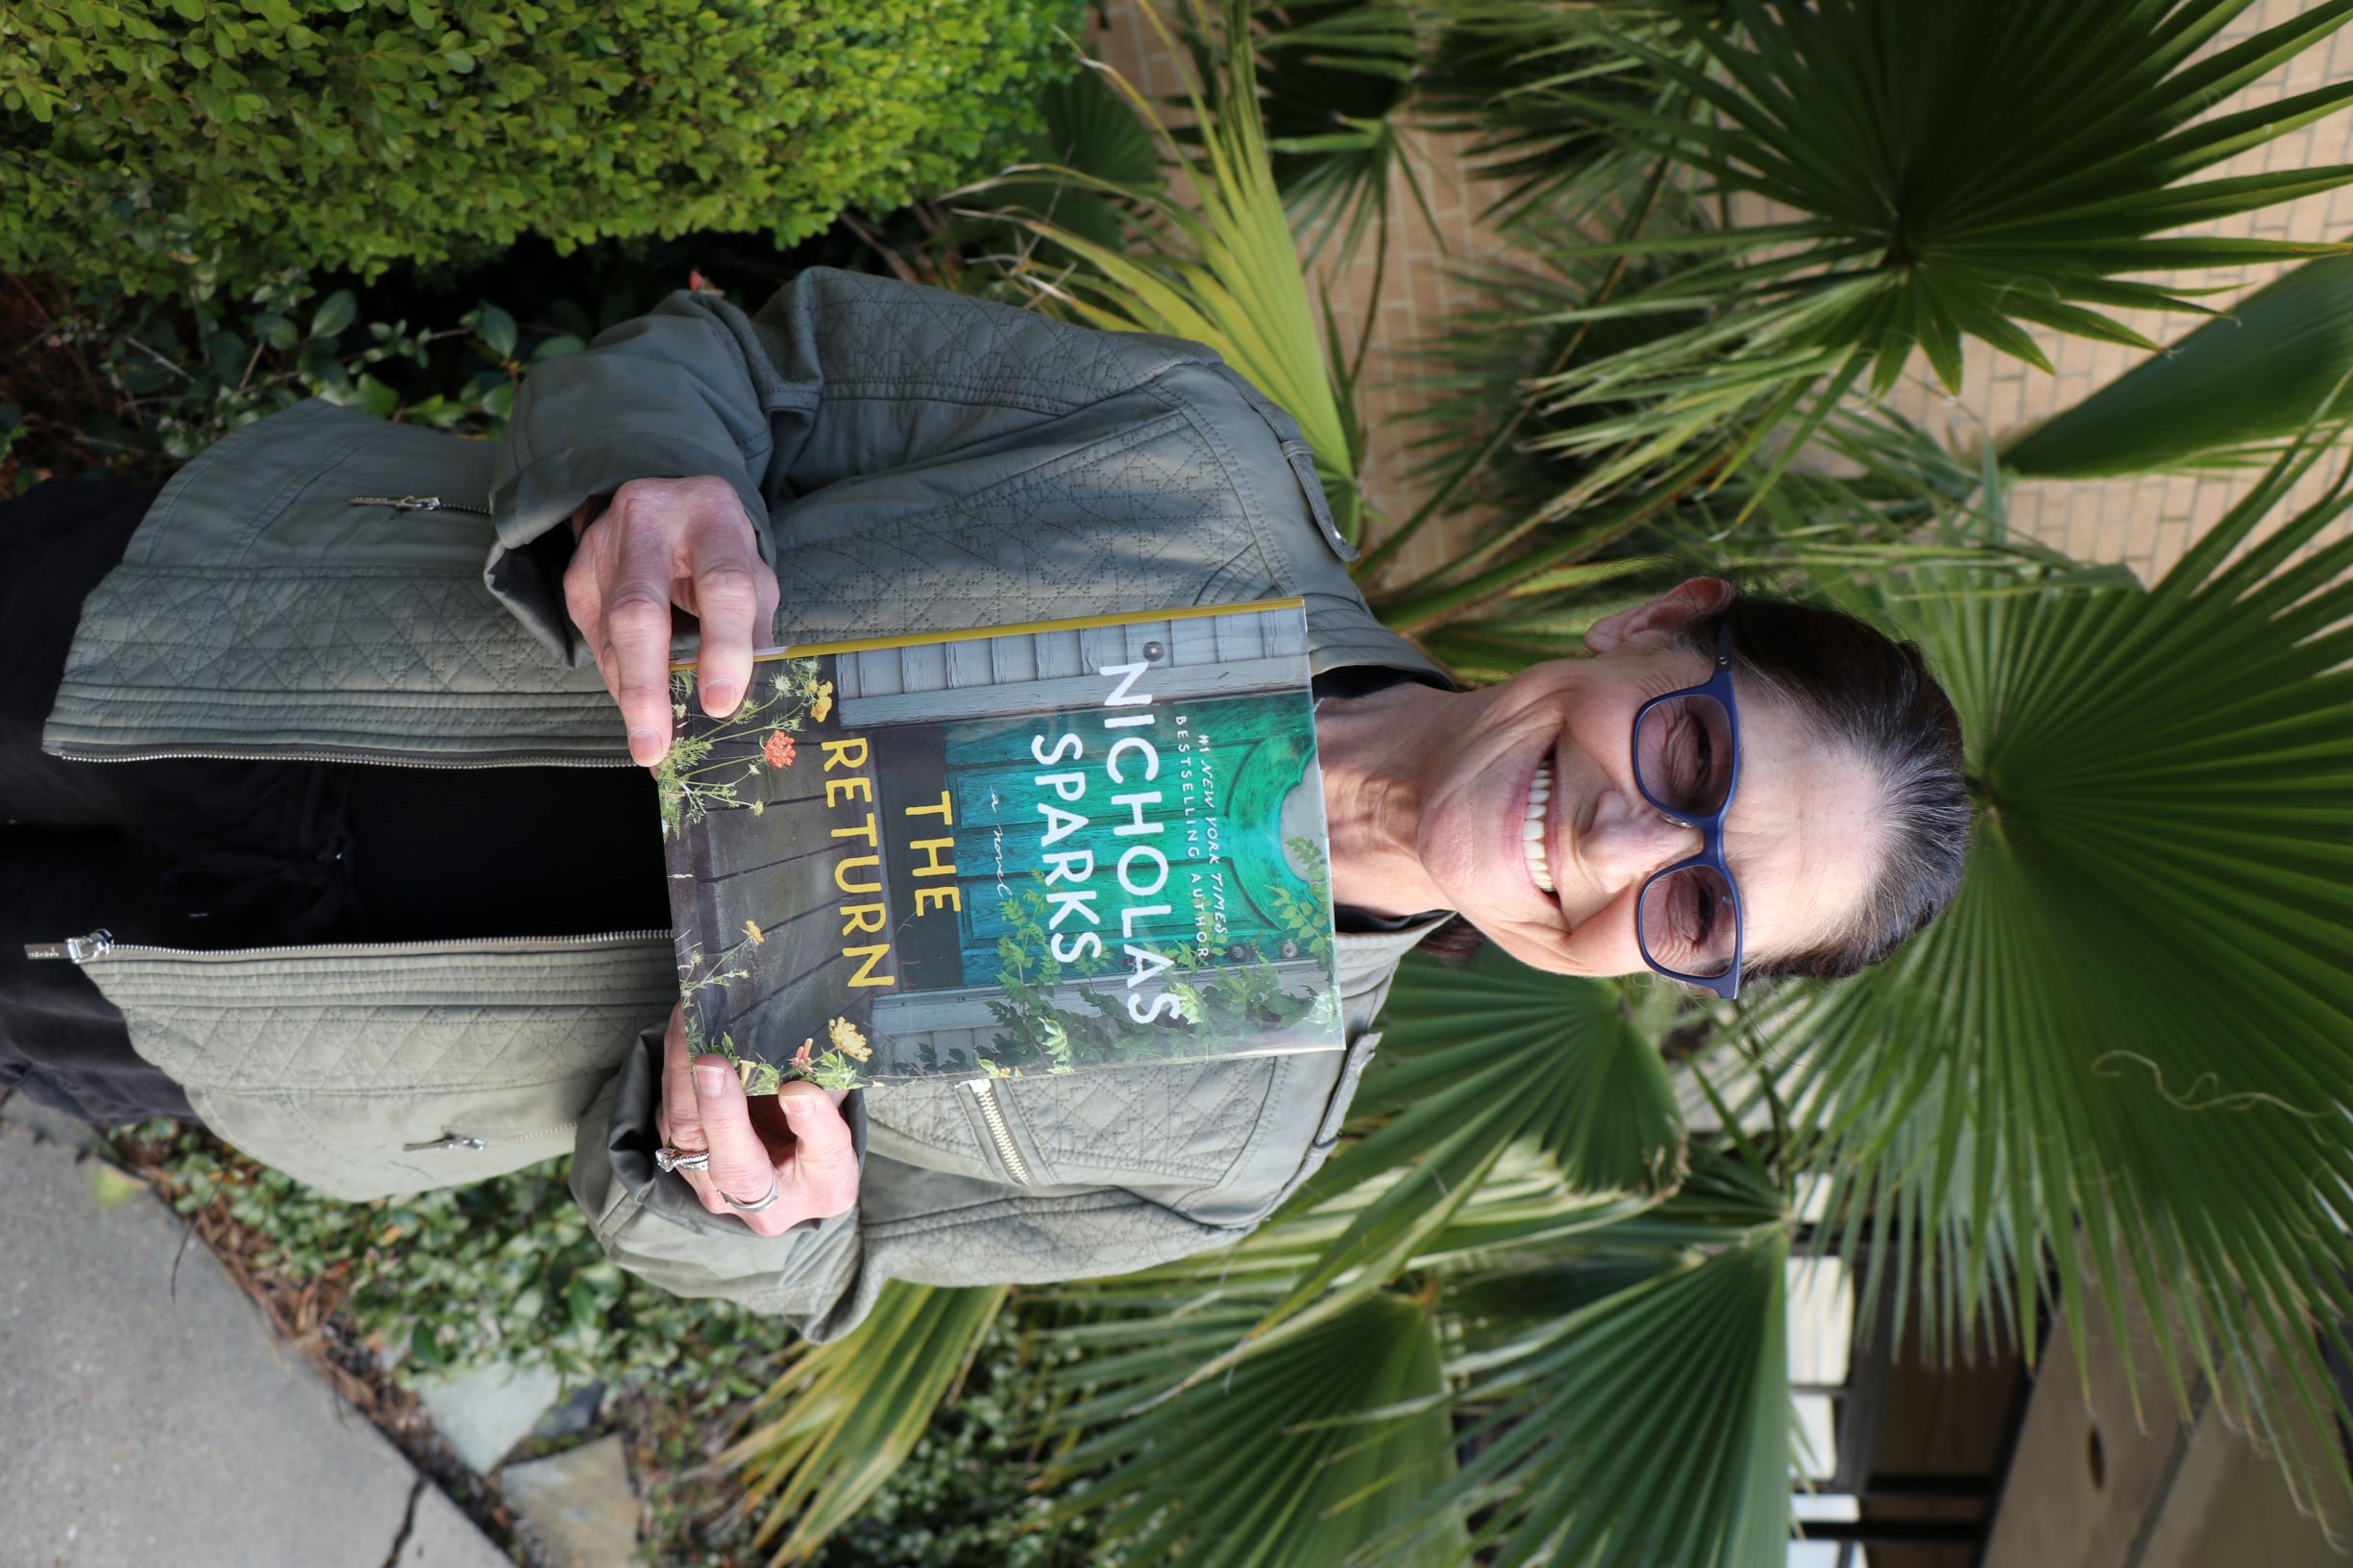 A woman stands in front of a plant. She is holding the book The Return.